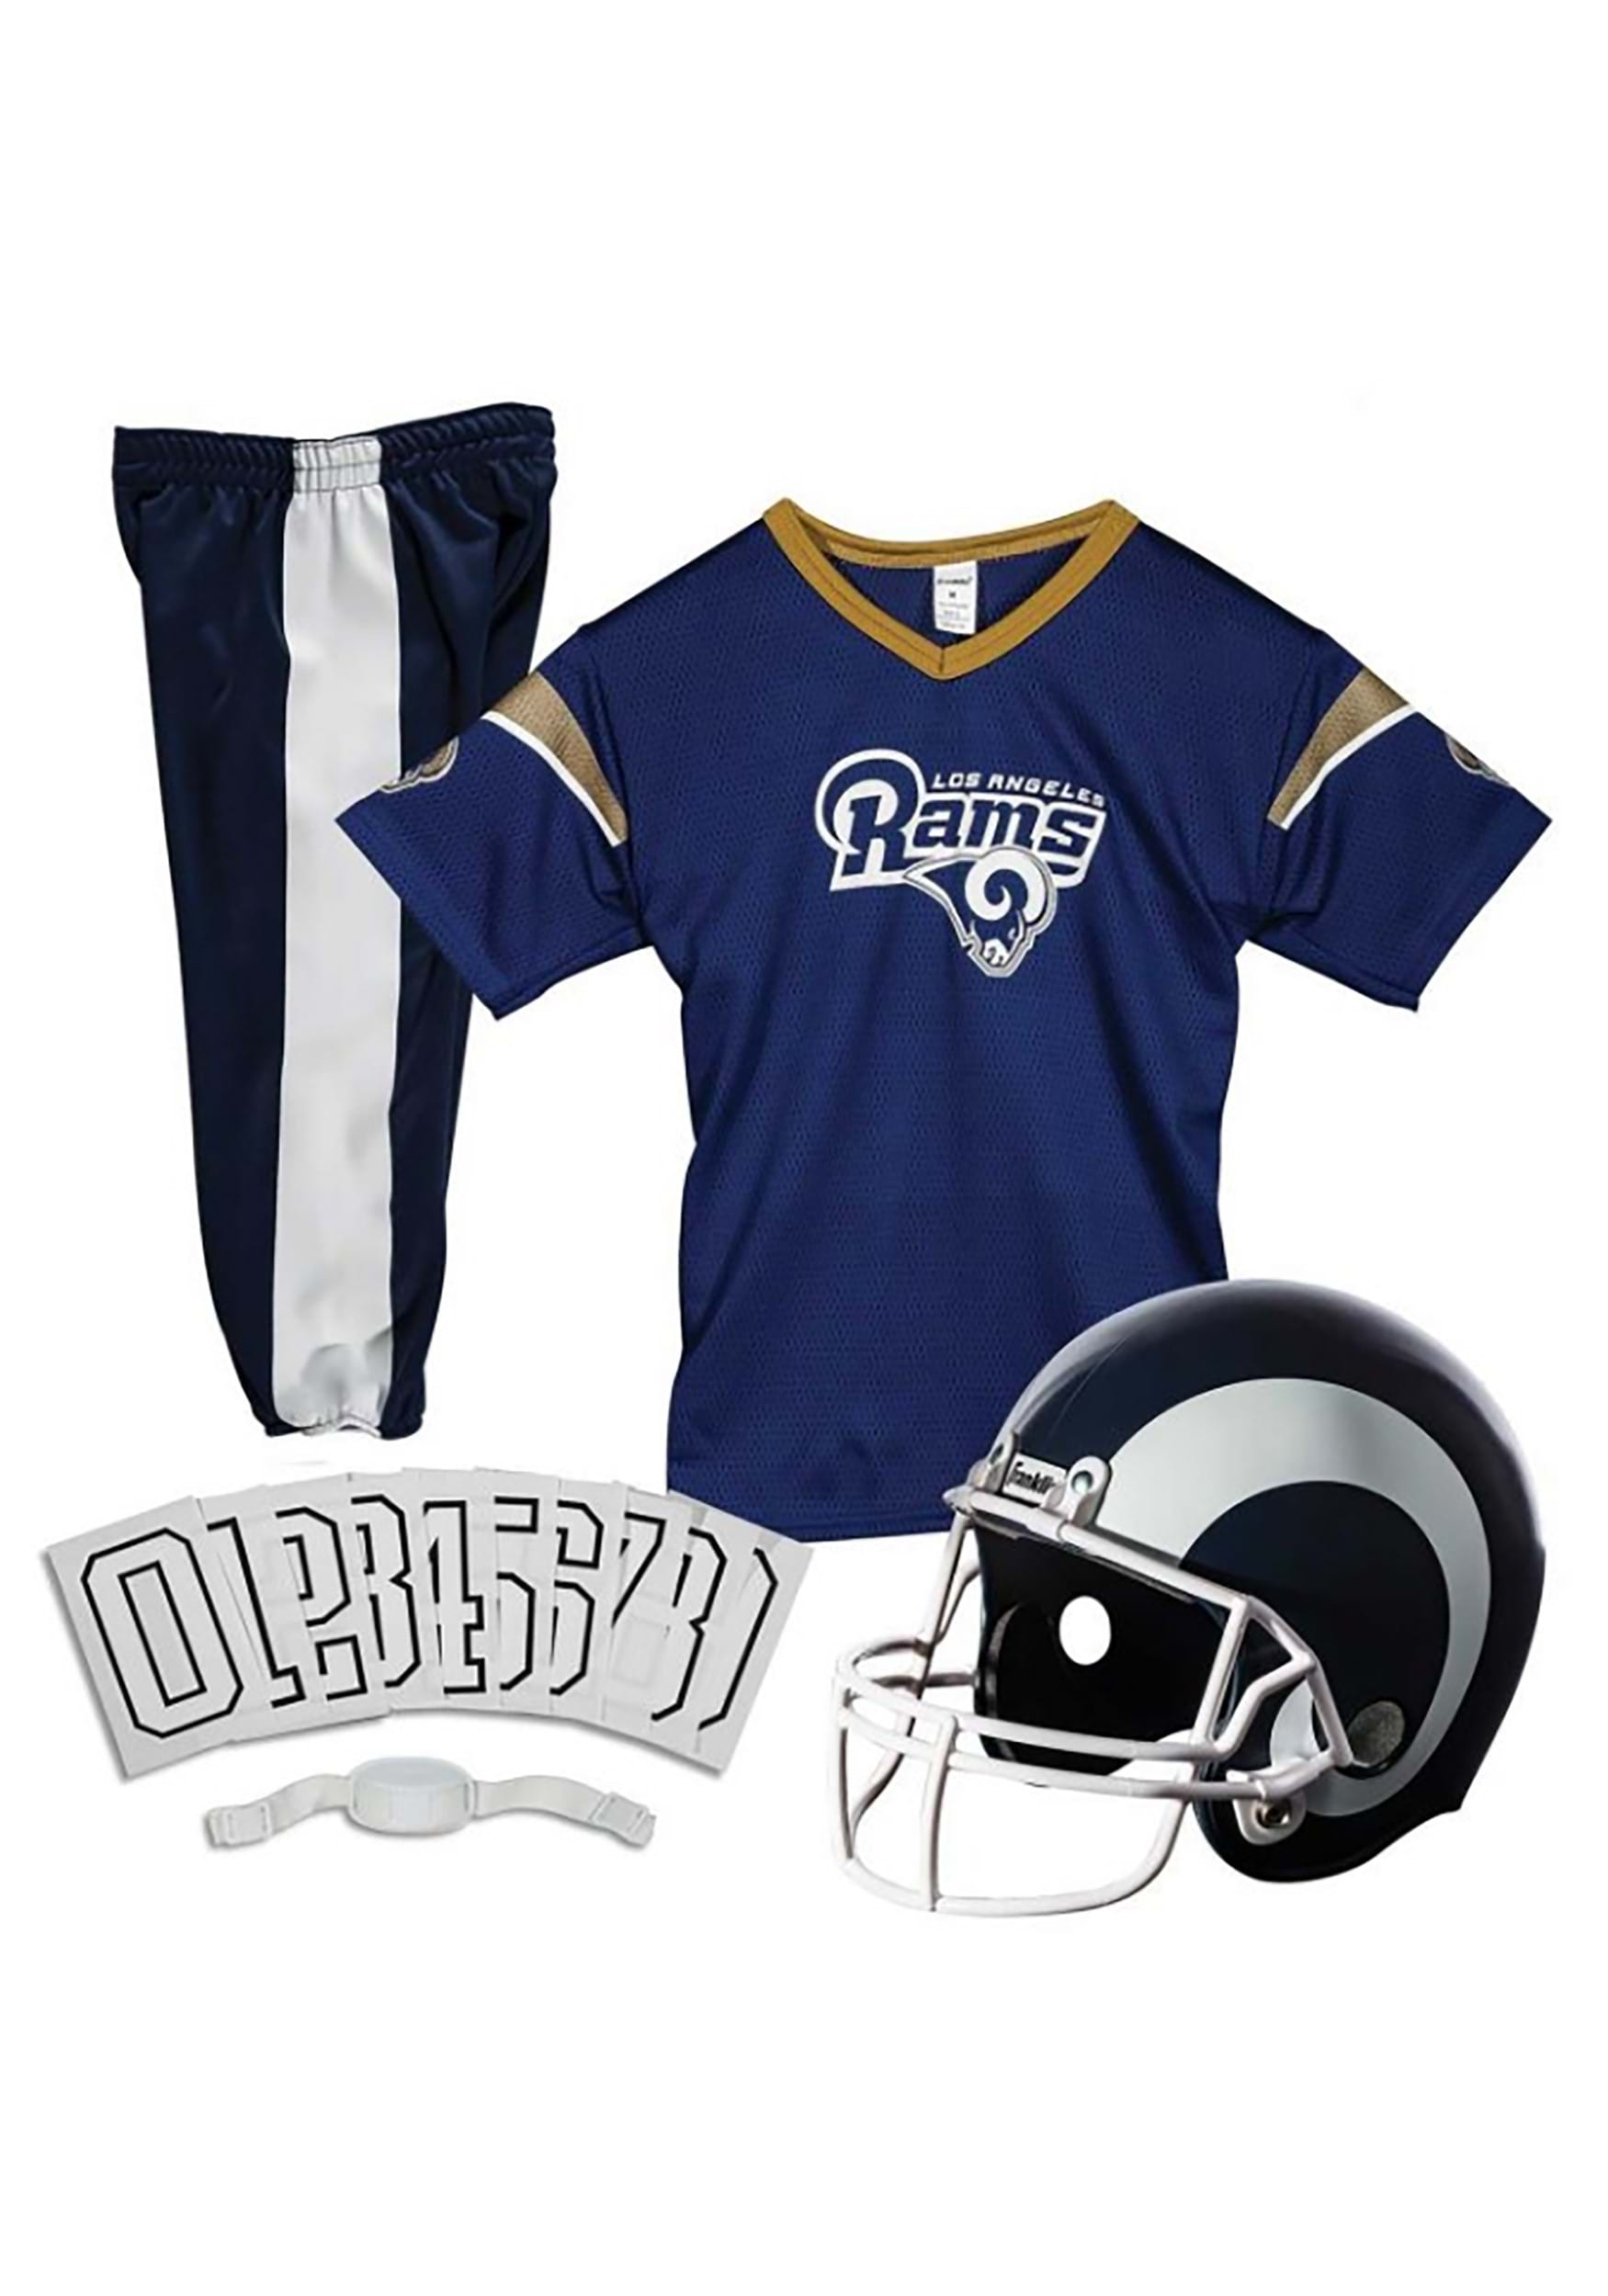 INOpets.com Anything for Pets Parents & Their Pets Los Angeles Rams NFL Uniform Costume